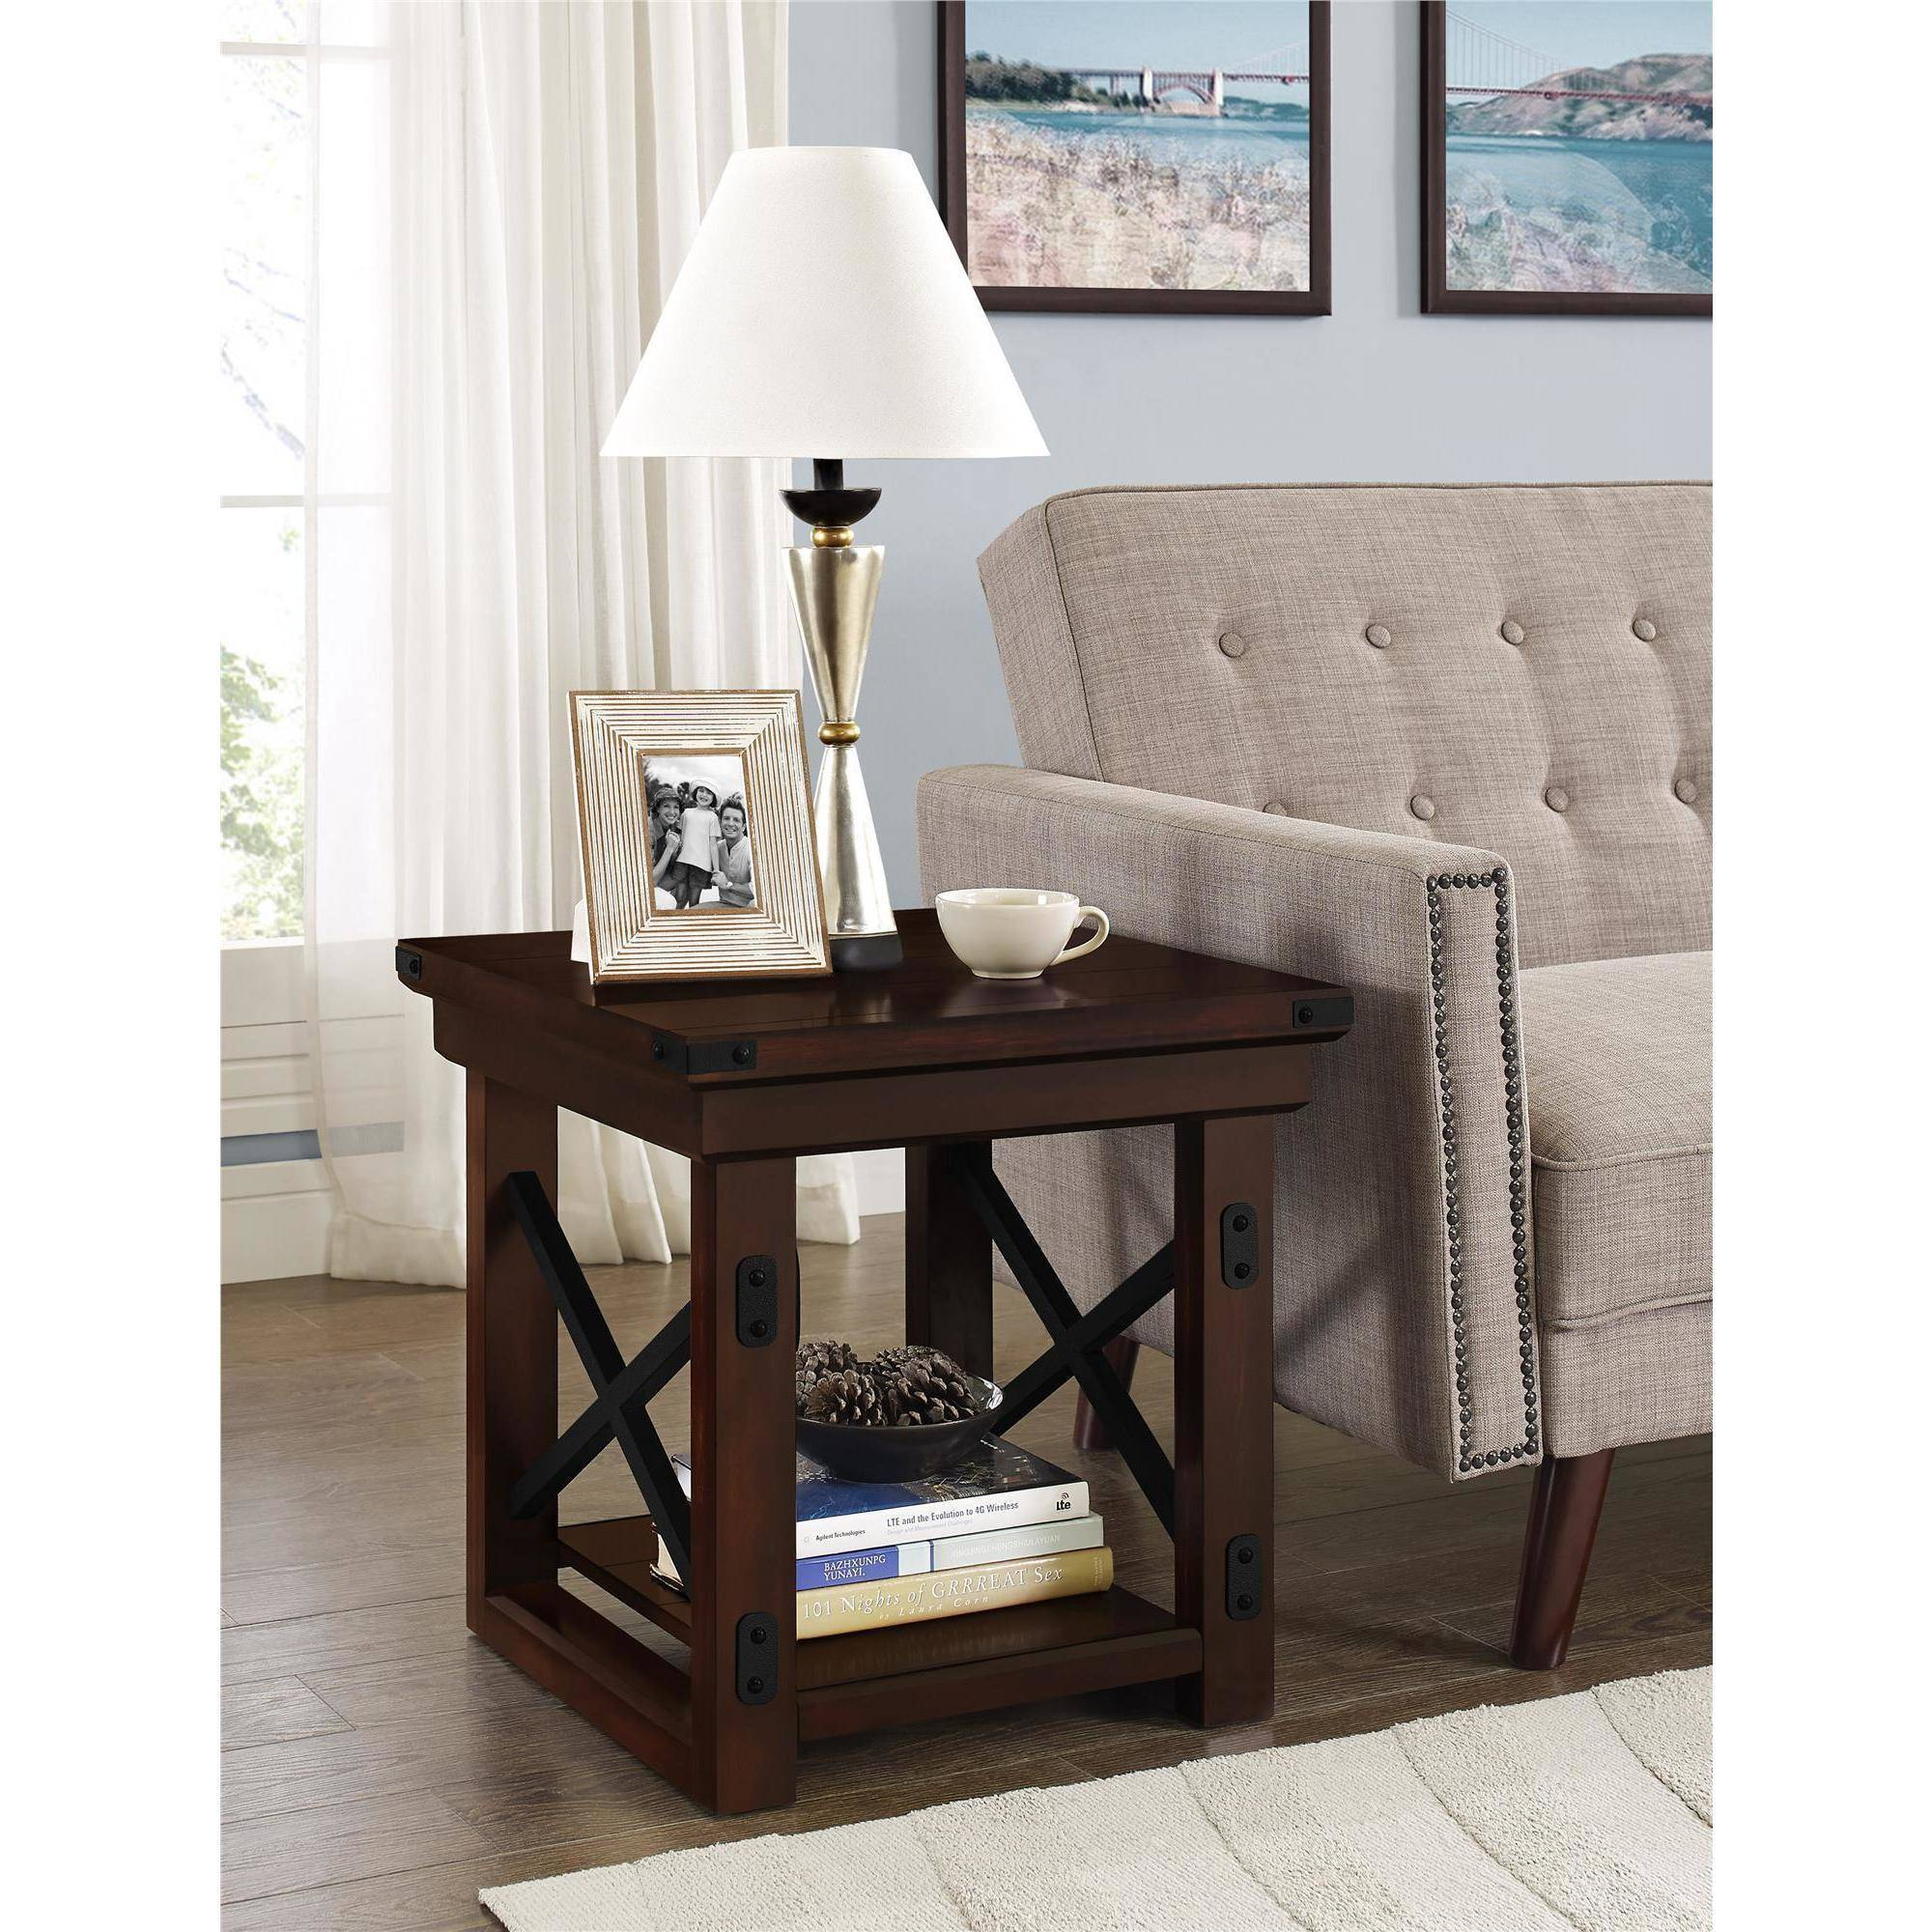 type writer intl get unlimited furniture delivery from crate better homes and gardens piece living room set end table dark wood accent sofa tray ikea white circle coffee large